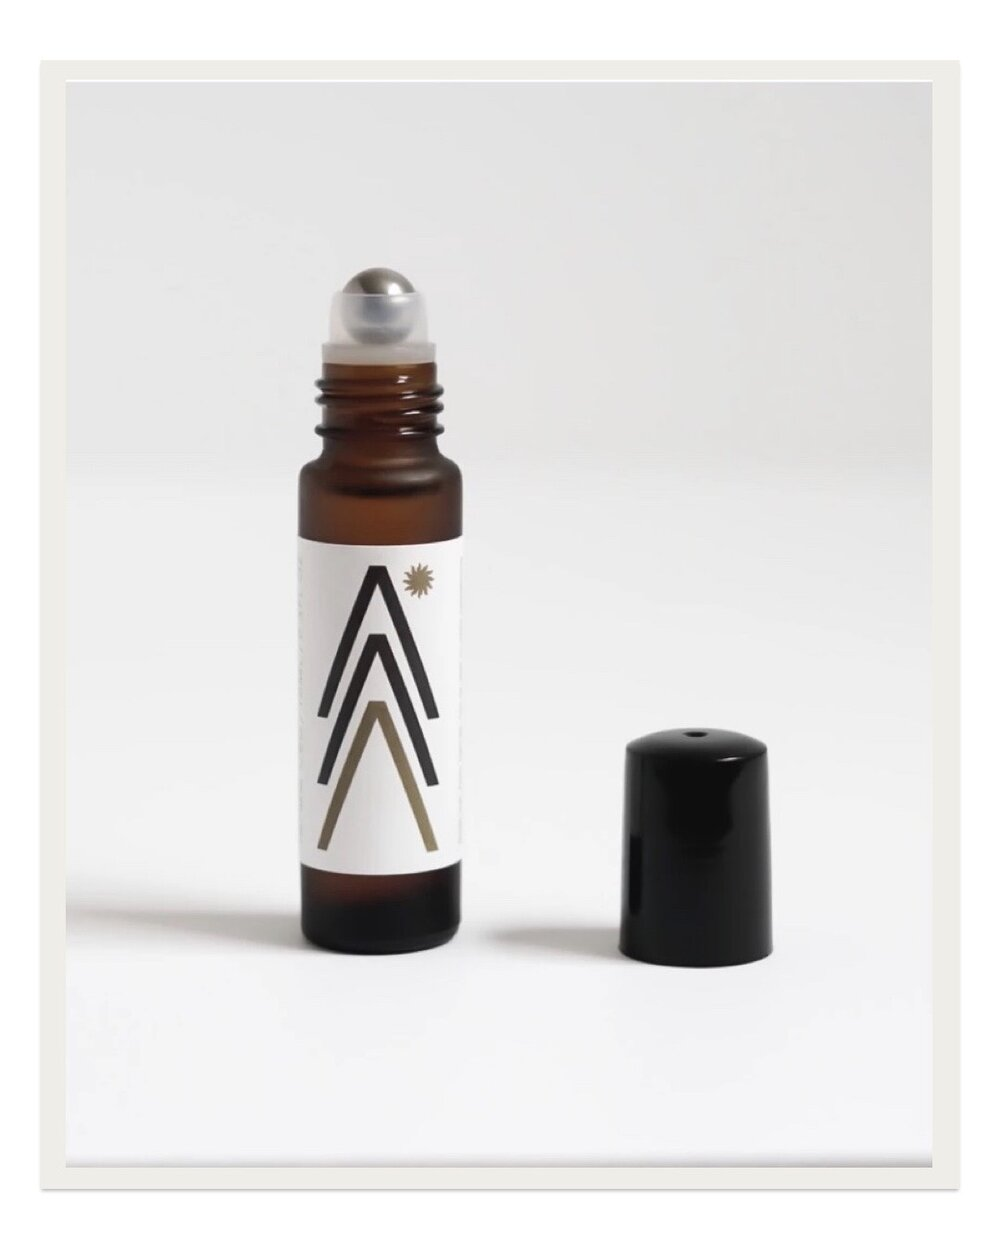 This Aurelian Palo Santo CBD infused topical roller never leaves my sight. I would wear it as a unisex fragrance because I love the scent so much even if it didn't contain organic, full-spectrum CBD, but the addition of this pain-relieving anti-inflammatory gives added benefits. I get the glorious aromatherapy of wood notes, vetiver, amber, and grapefruit to soothe my senses and relief from neck tension at the same time!